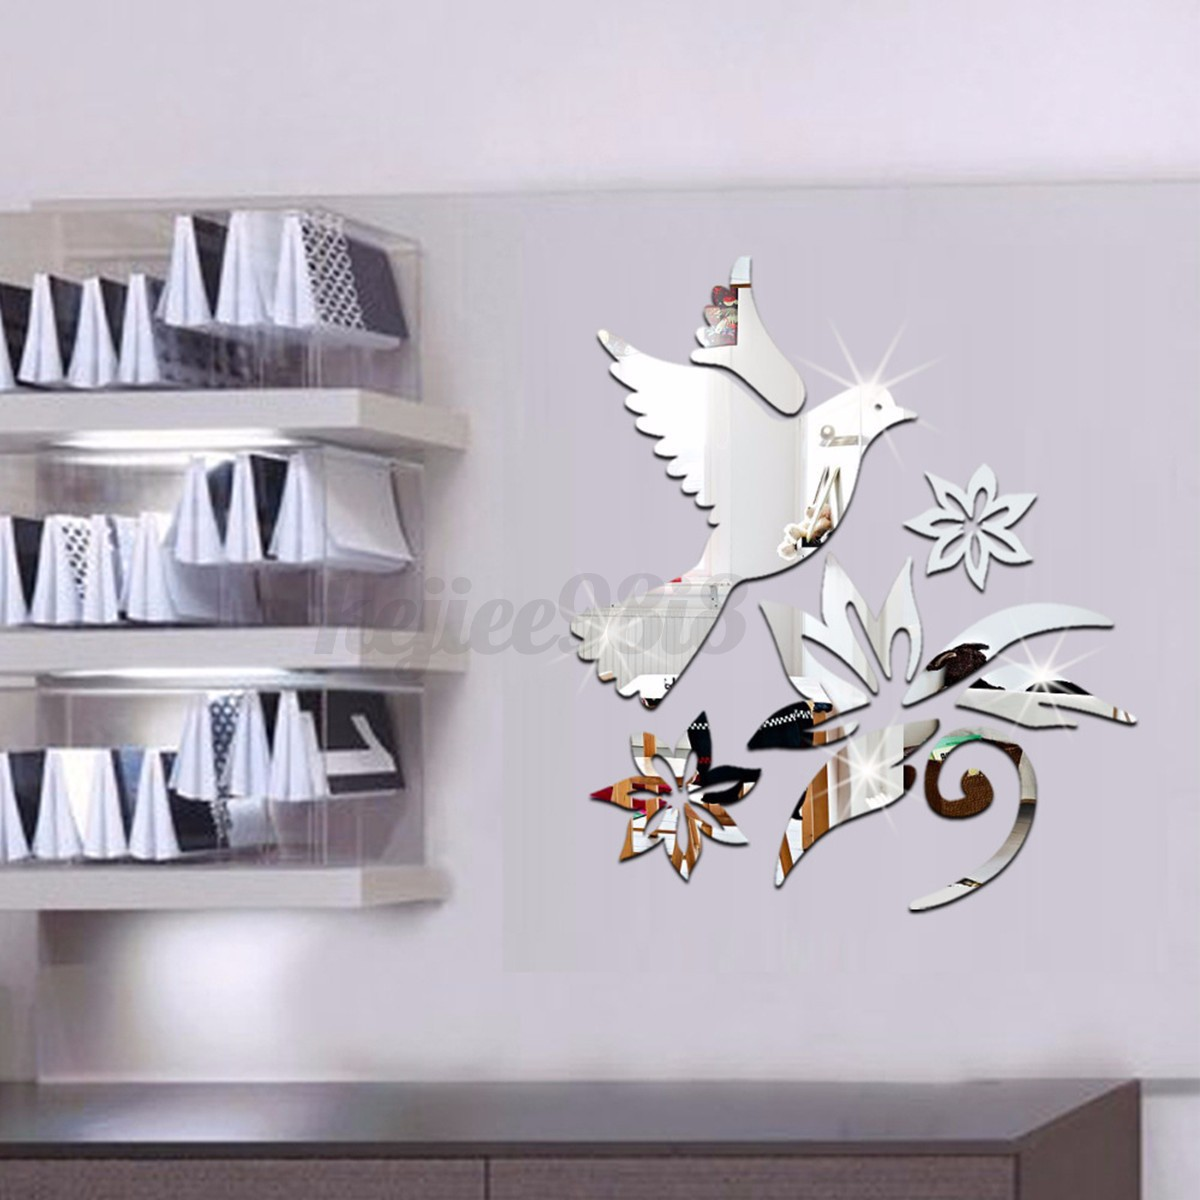 New 3d modern art mirror removable acrylic wall sticker for Diy wall photo mural